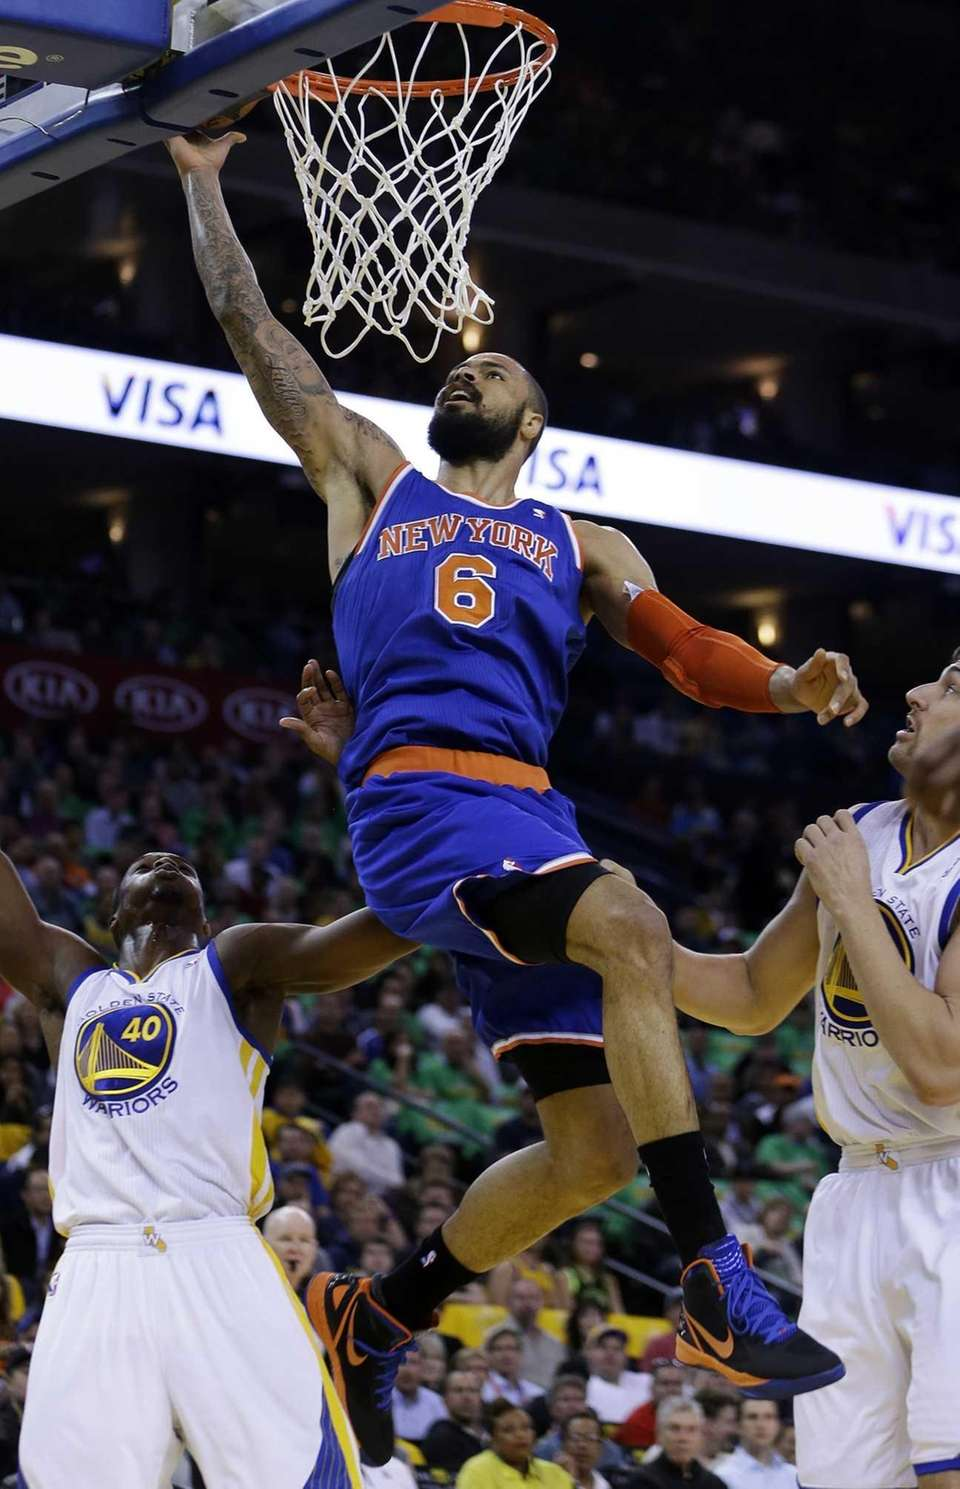 Tyson Chandler (6) lays up a shot over